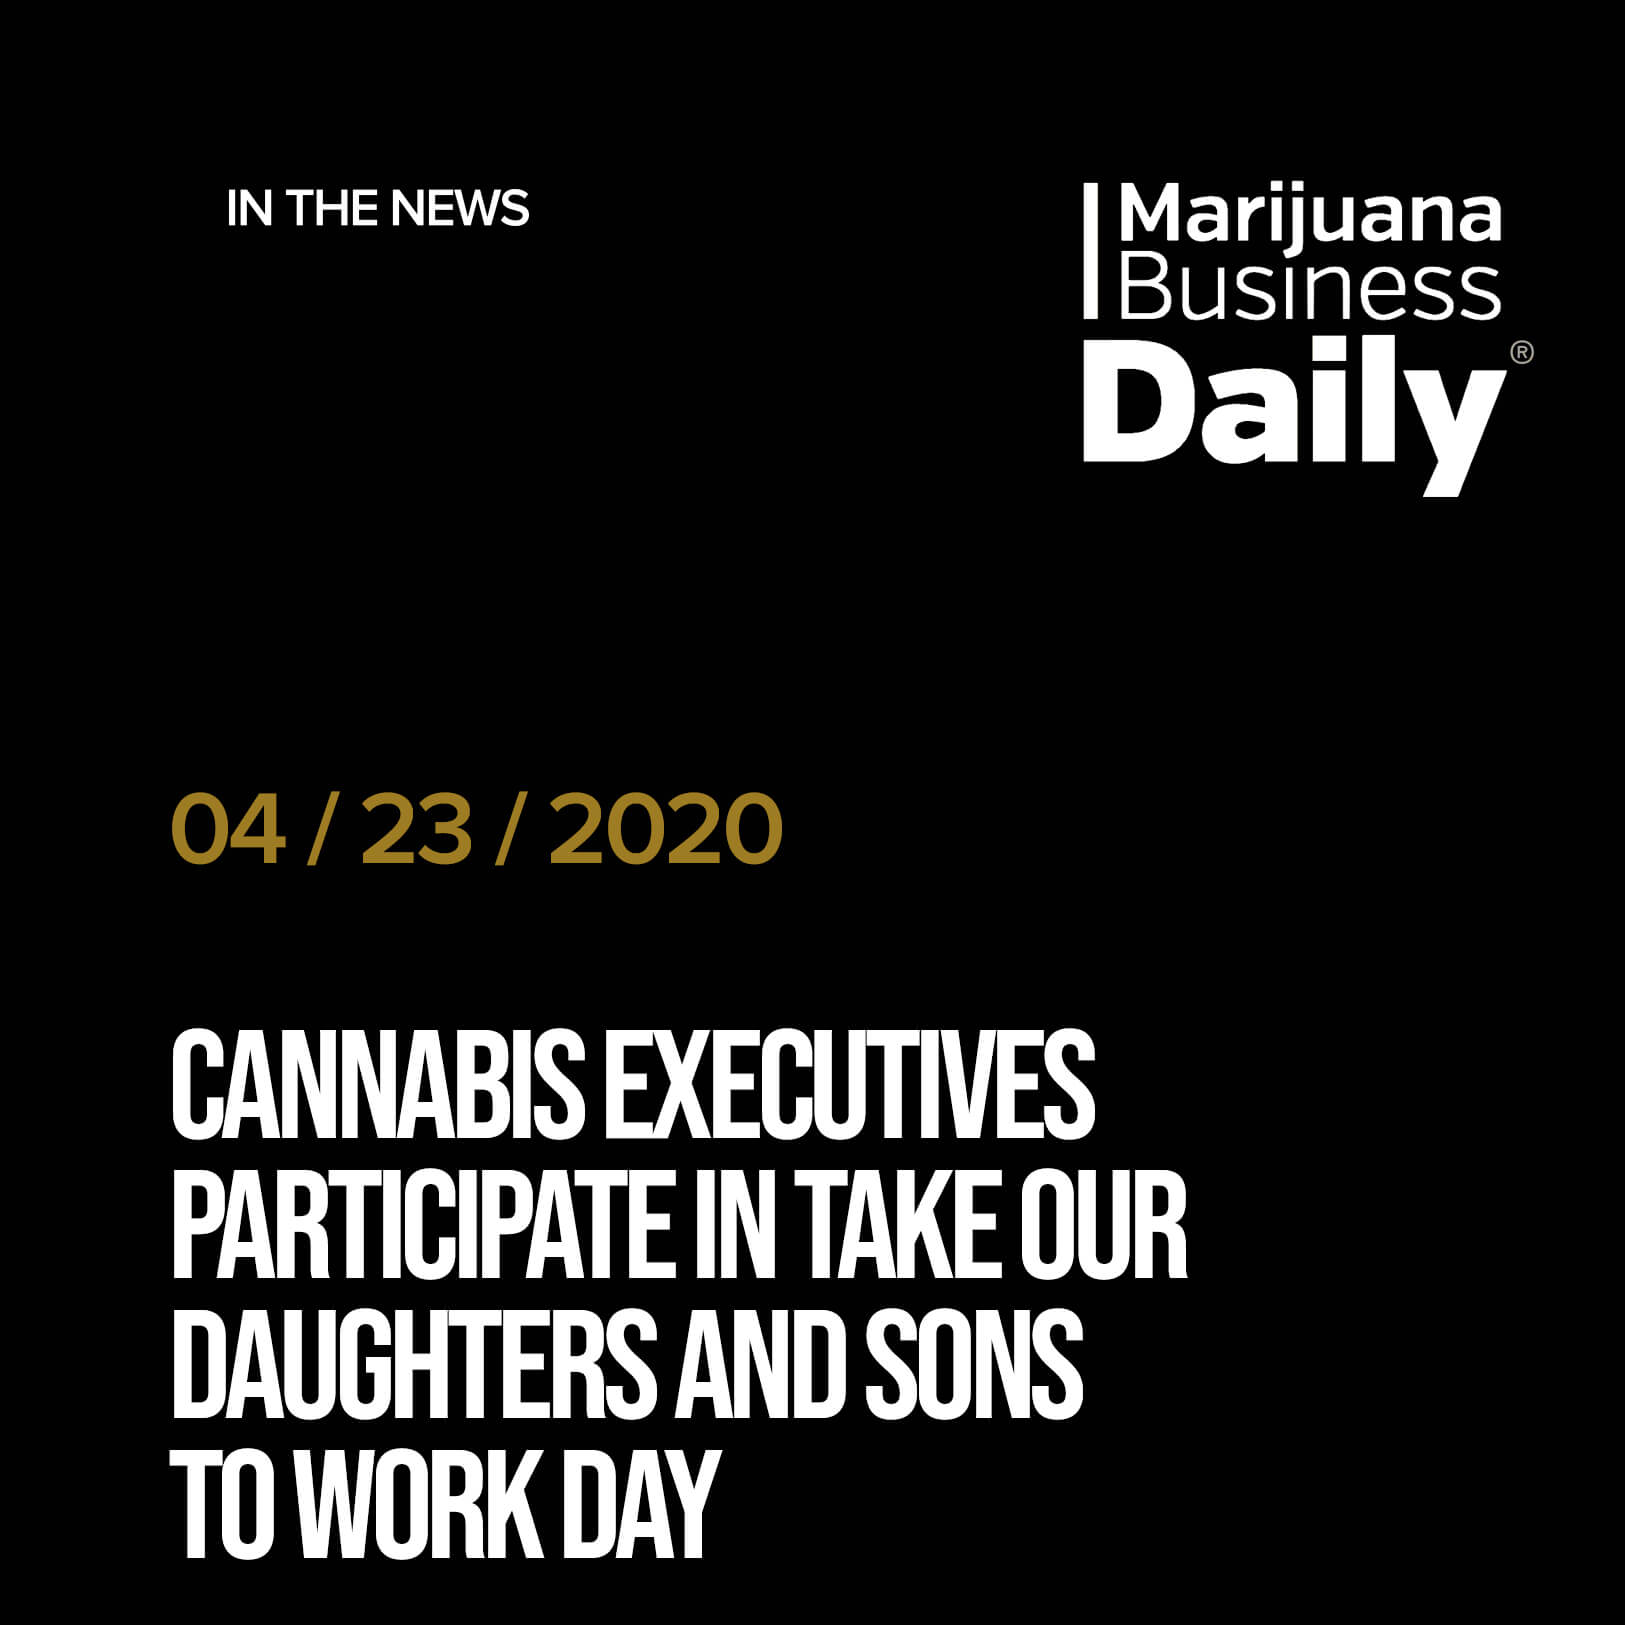 Cannabis executives participate in Take Our Daughters and Sons to Work Day